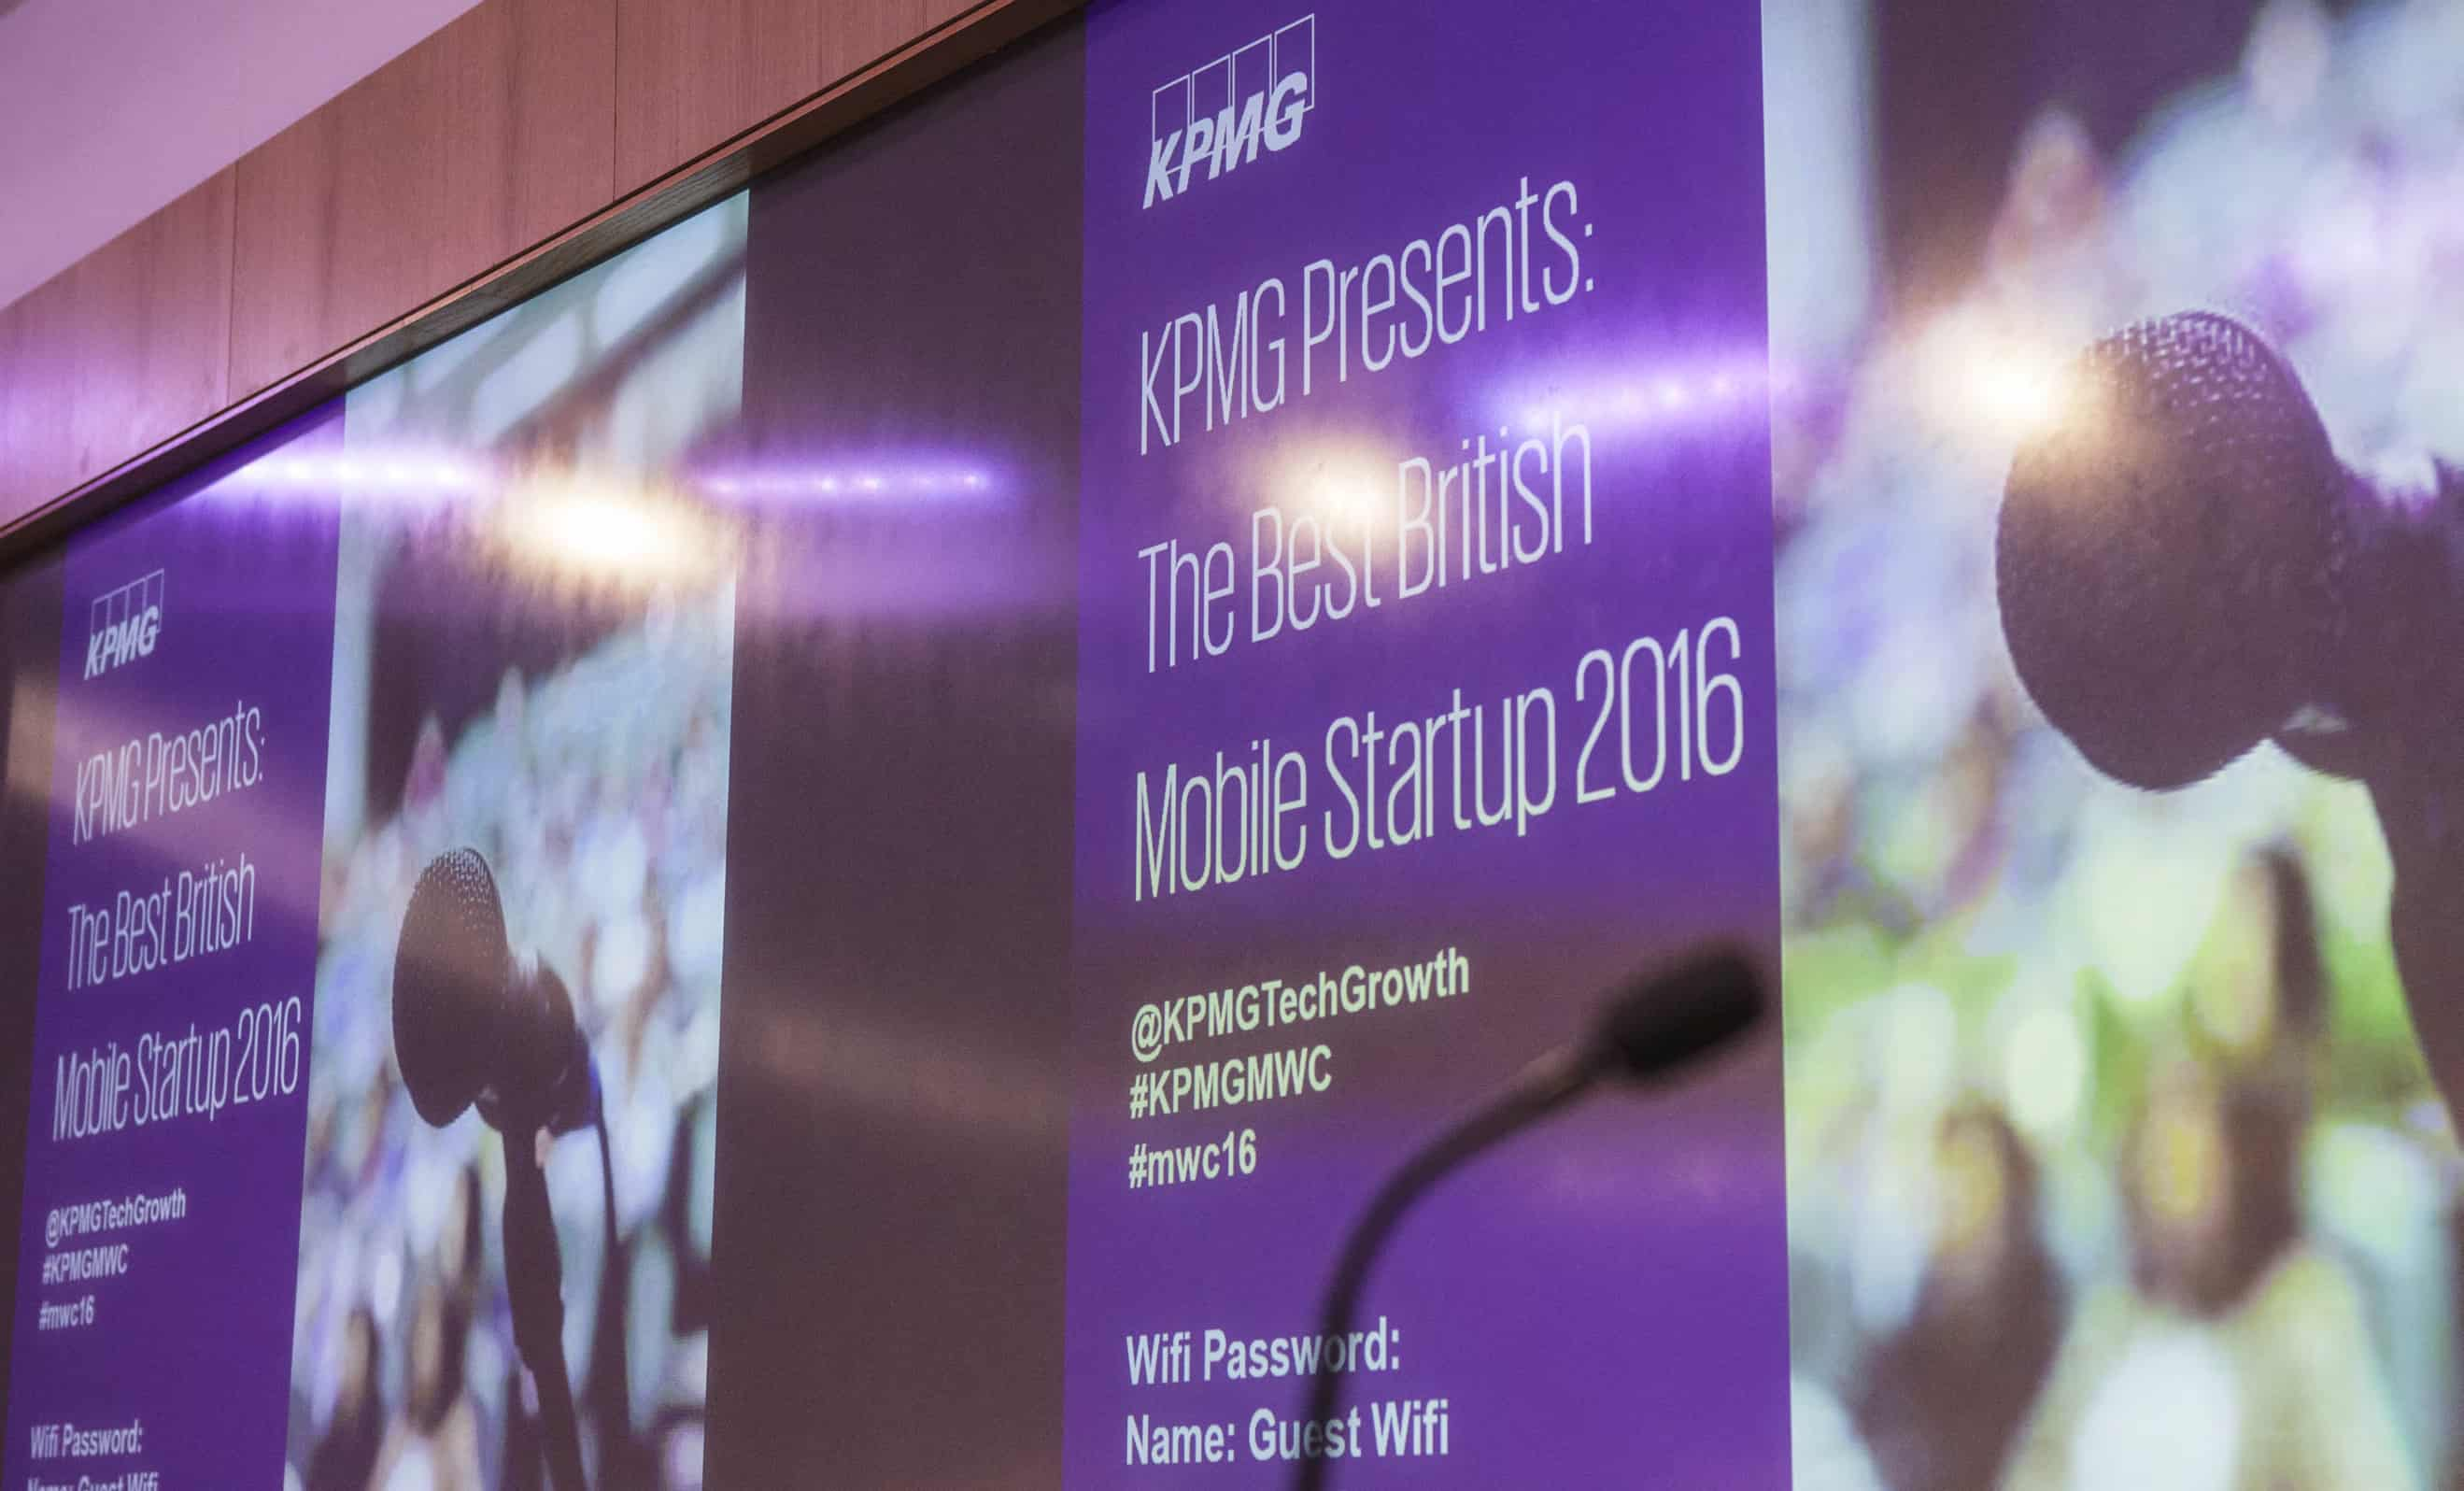 Are you a British mobile startup? Get involved in KPMG's competition